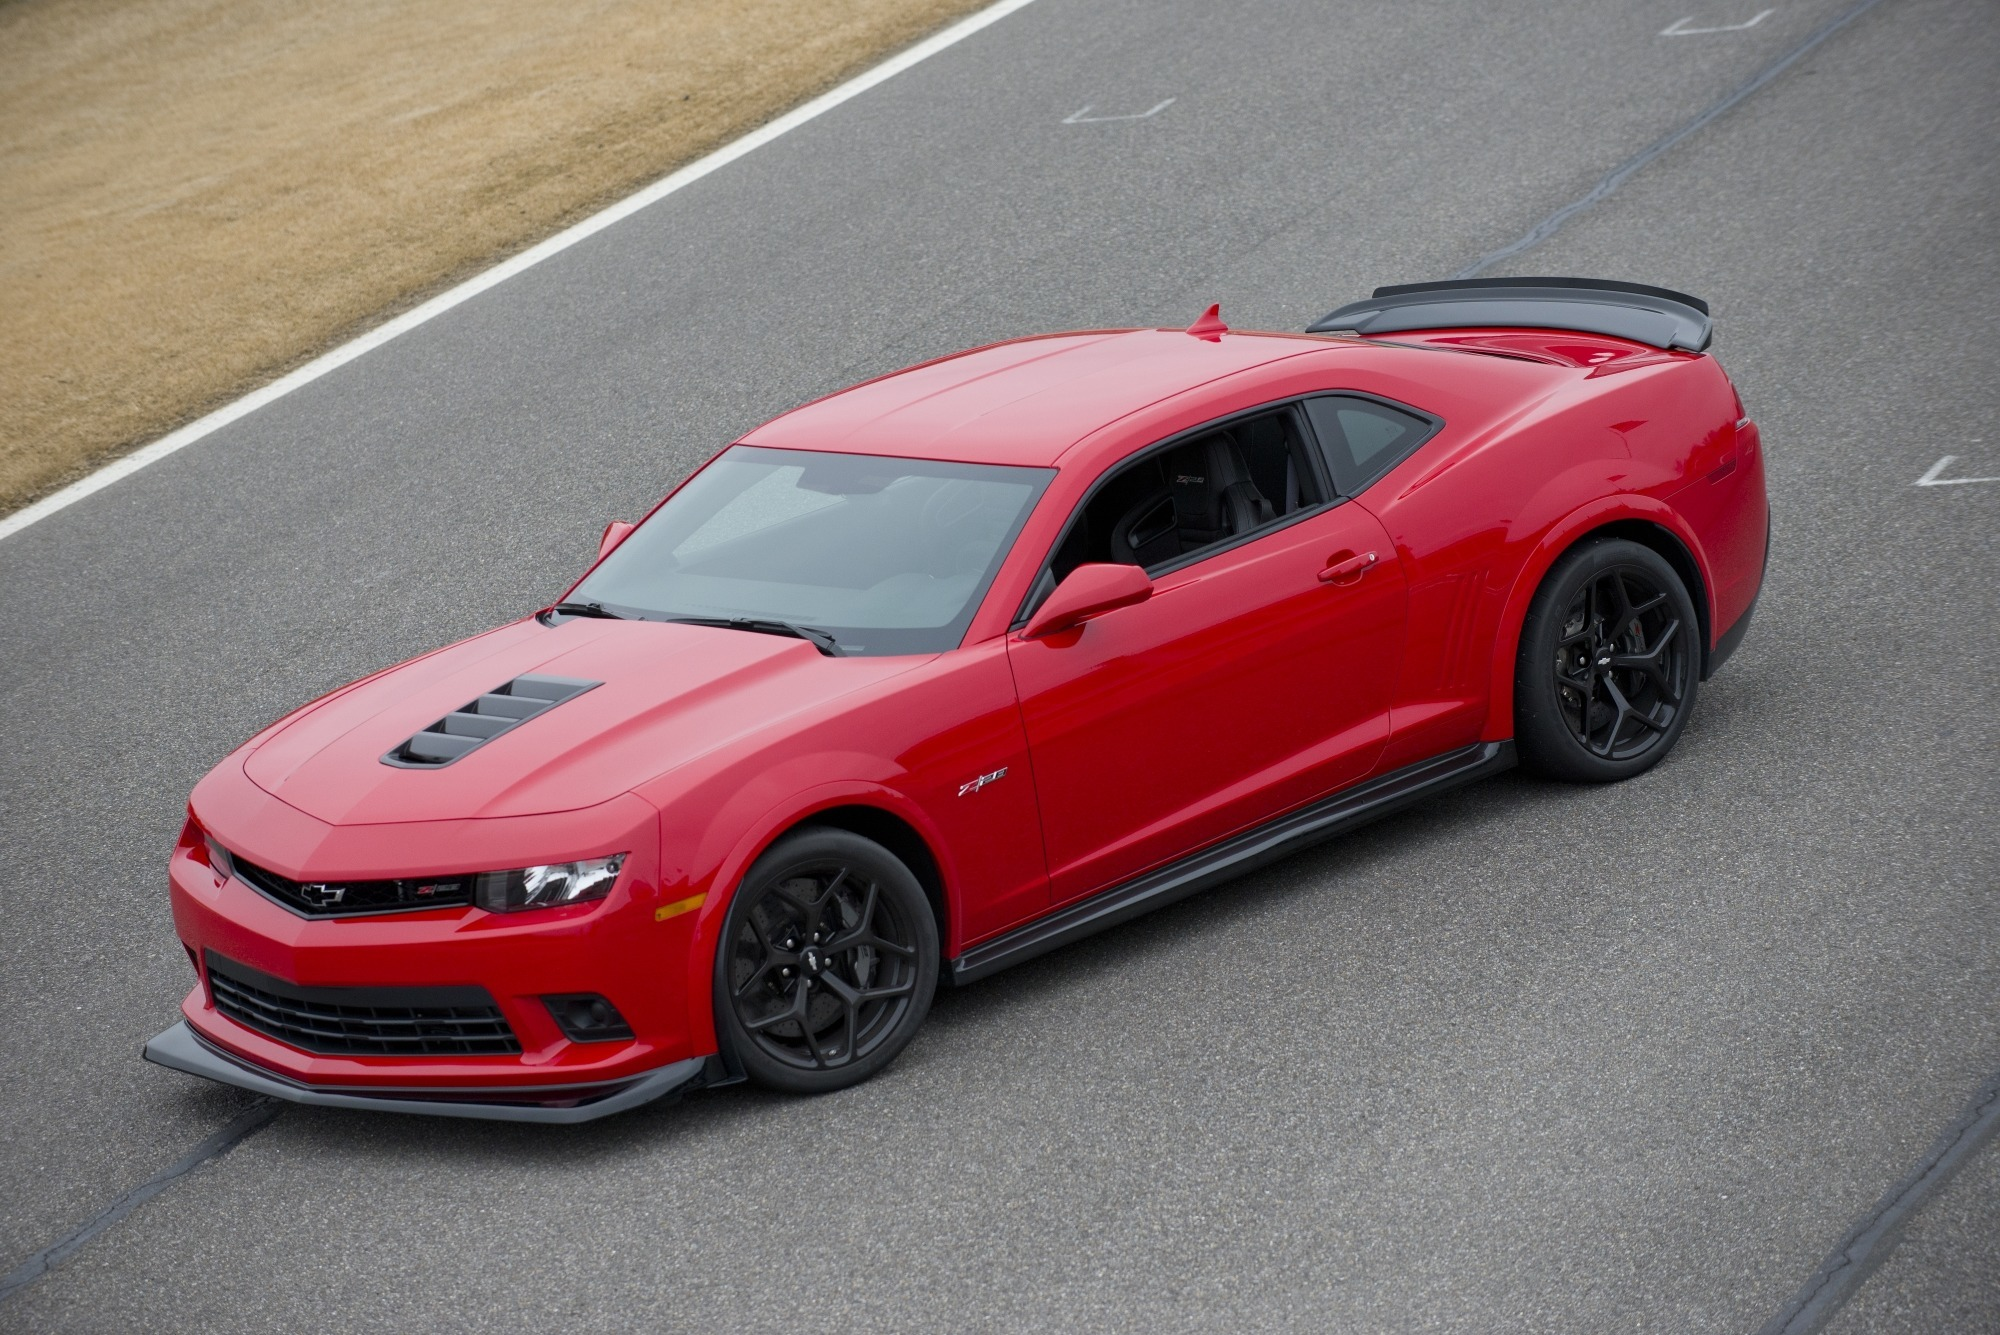 Dibujos De Carros likewise Need For Speed 2015 New Cars furthermore Performance Concept V 6 2014 Camaro together with Mdp photo thumbnails together with 7. on picture of 2015 chevrolet camaro